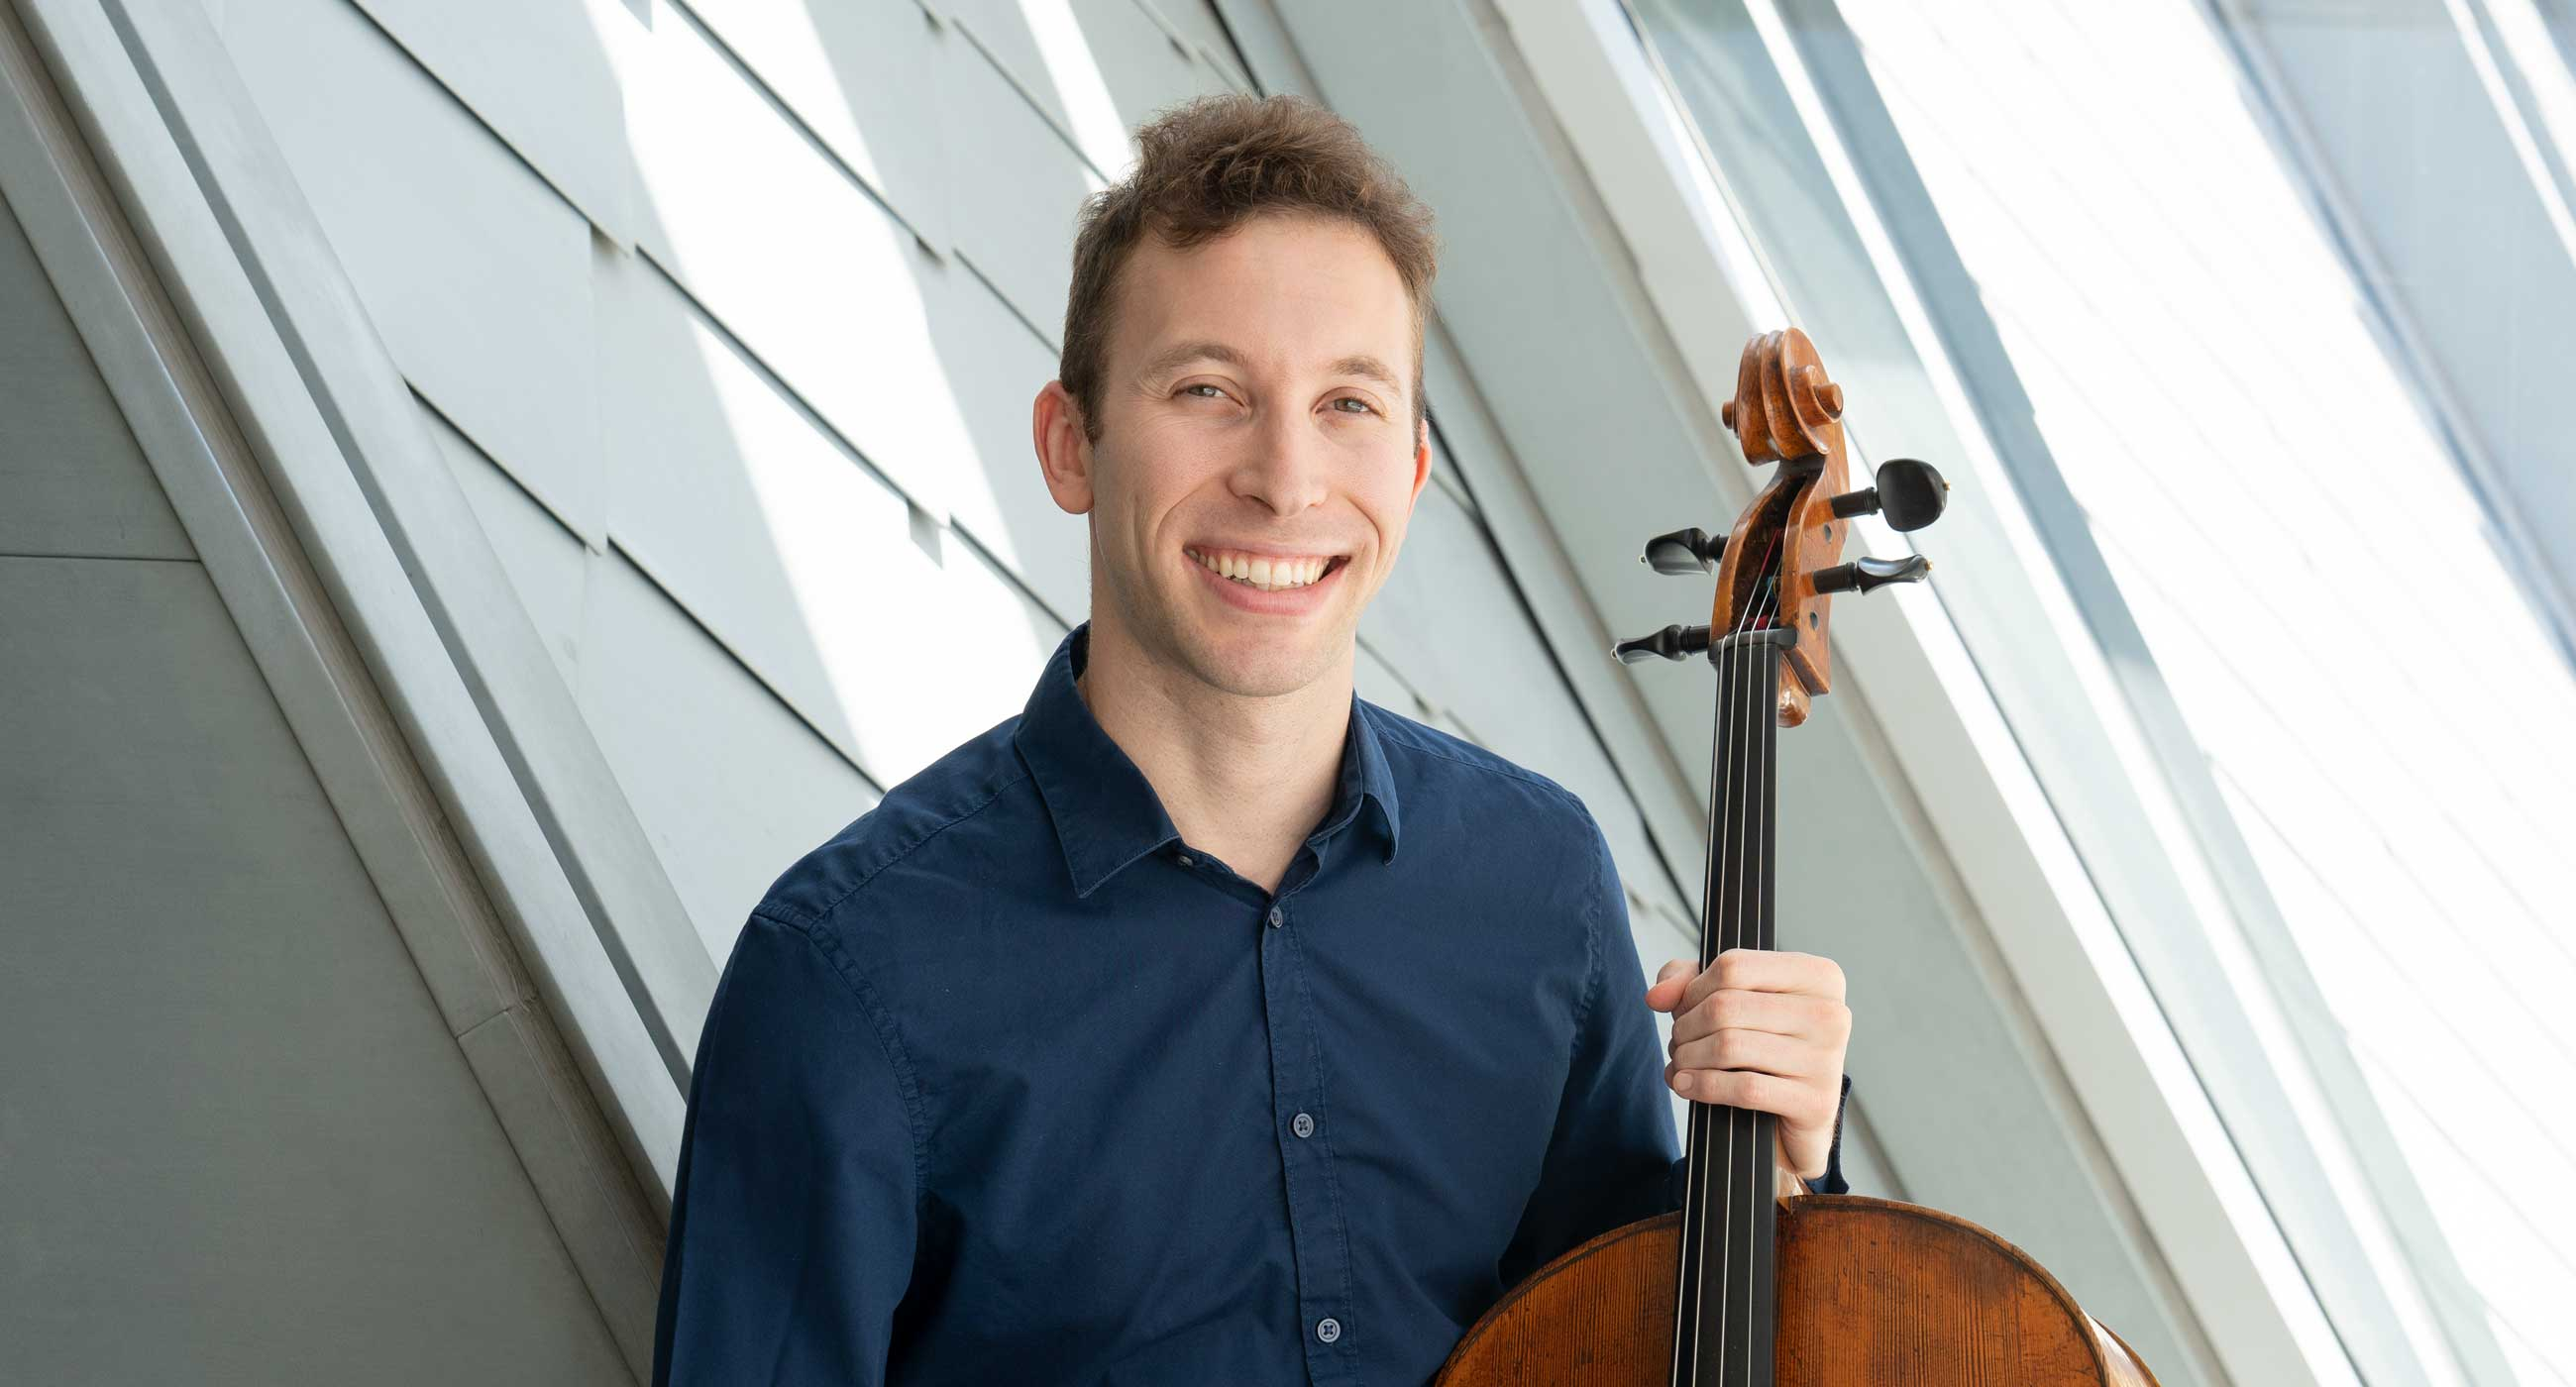 Michael Kaufman wearing a collared shirt, holding a cello, and smiling in front of a window.